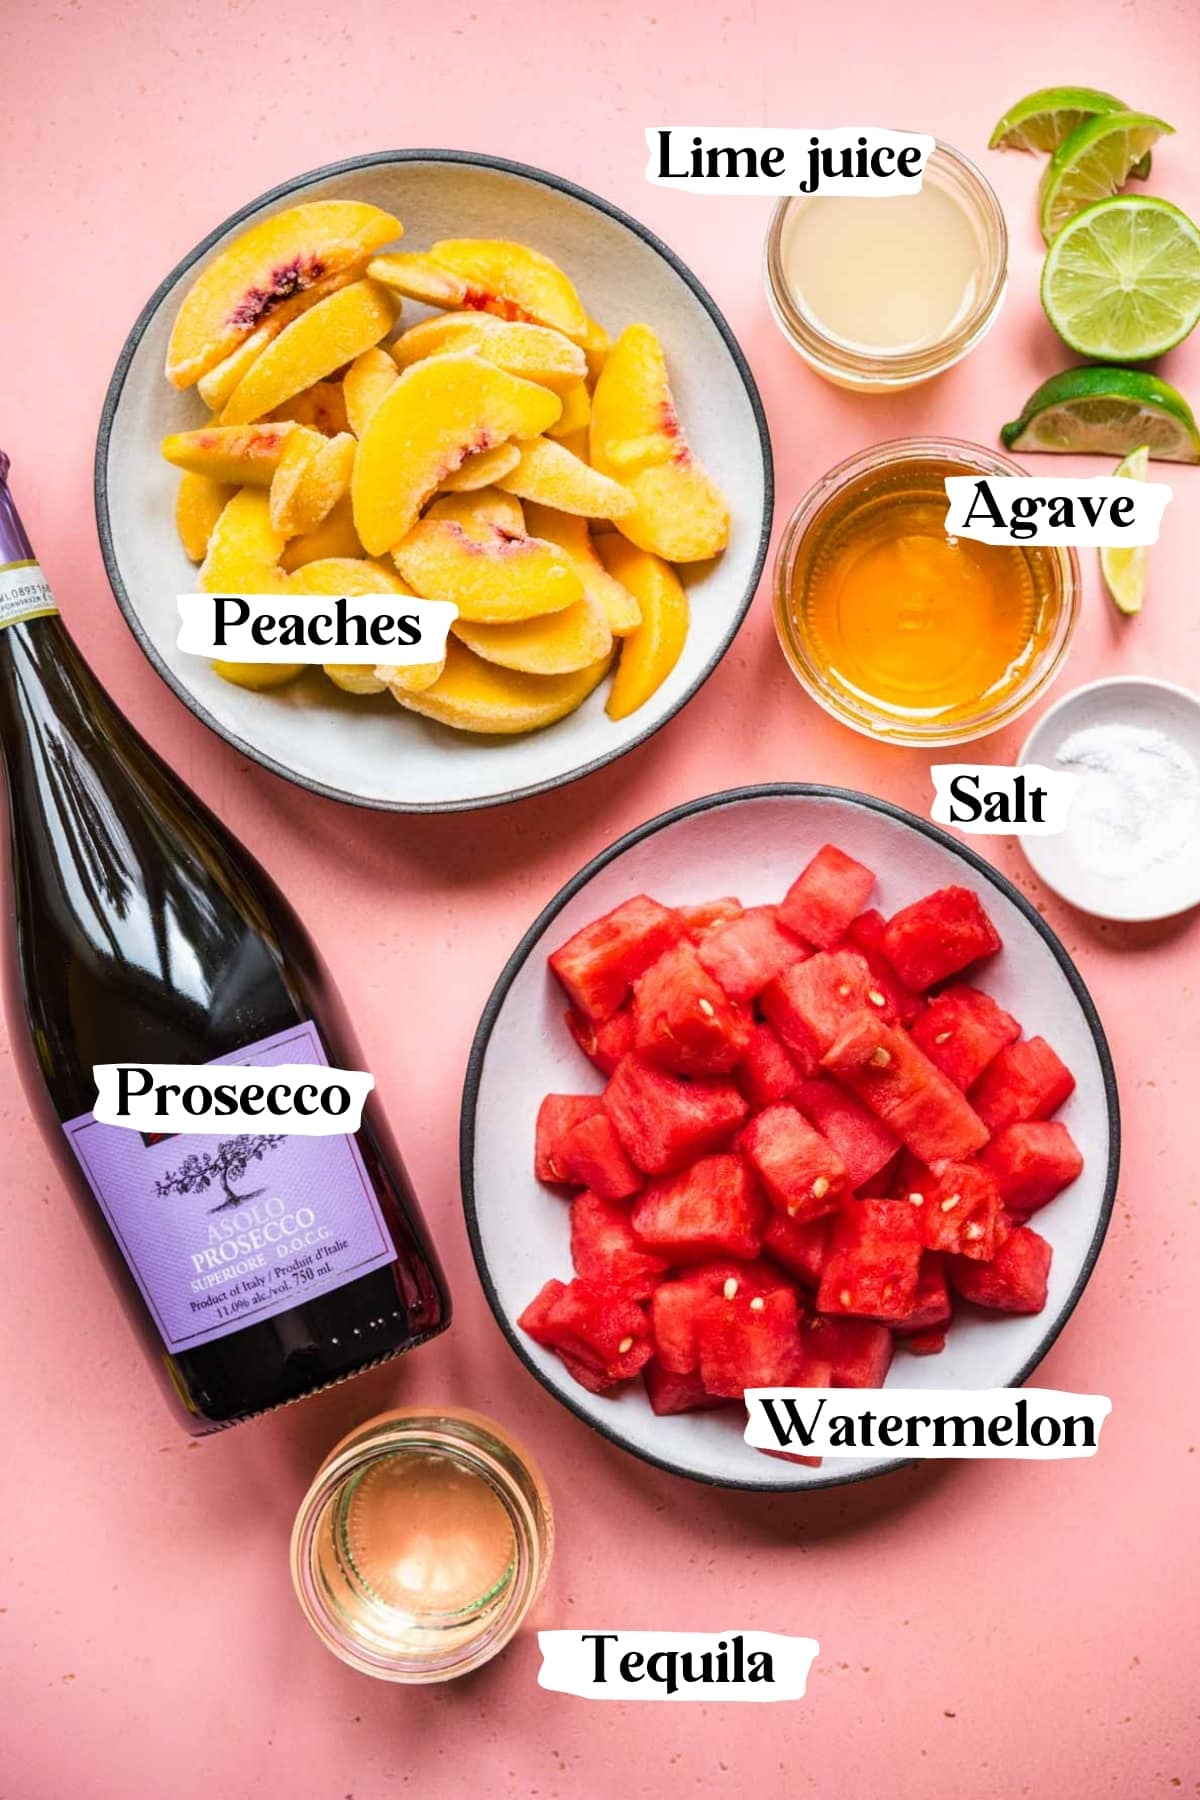 overhead view of peaches, watermelon cubes, prosecco bottle and other ingredients for popsicles.